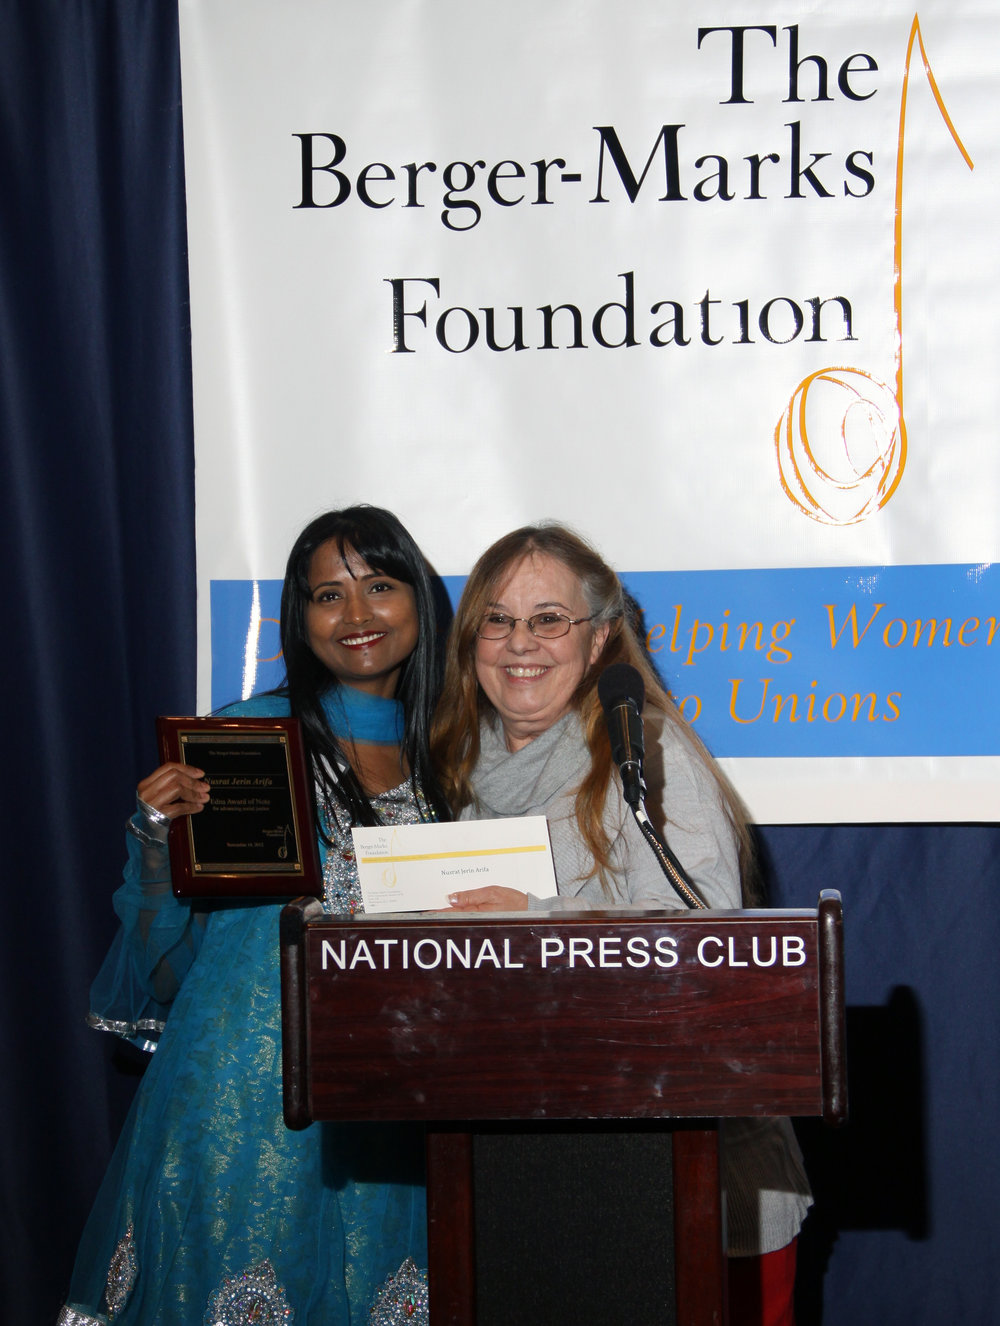 Award from Berger-Marks Foundation